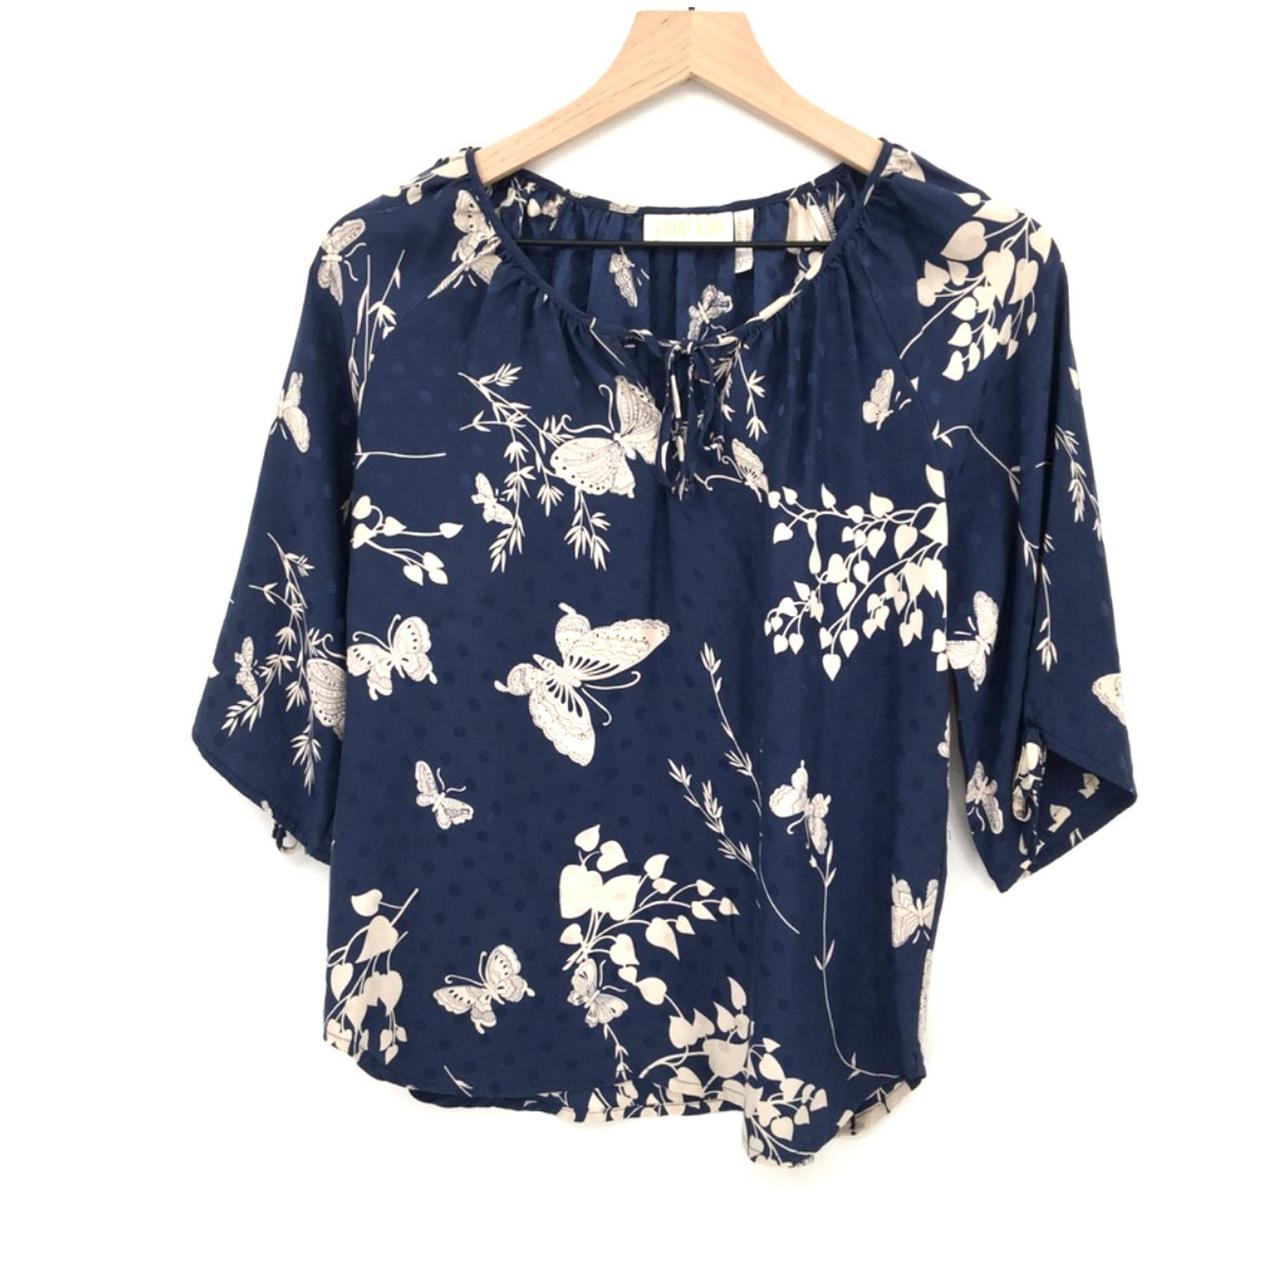 Product Image 1 - Yumi Kim Top Blue Floral